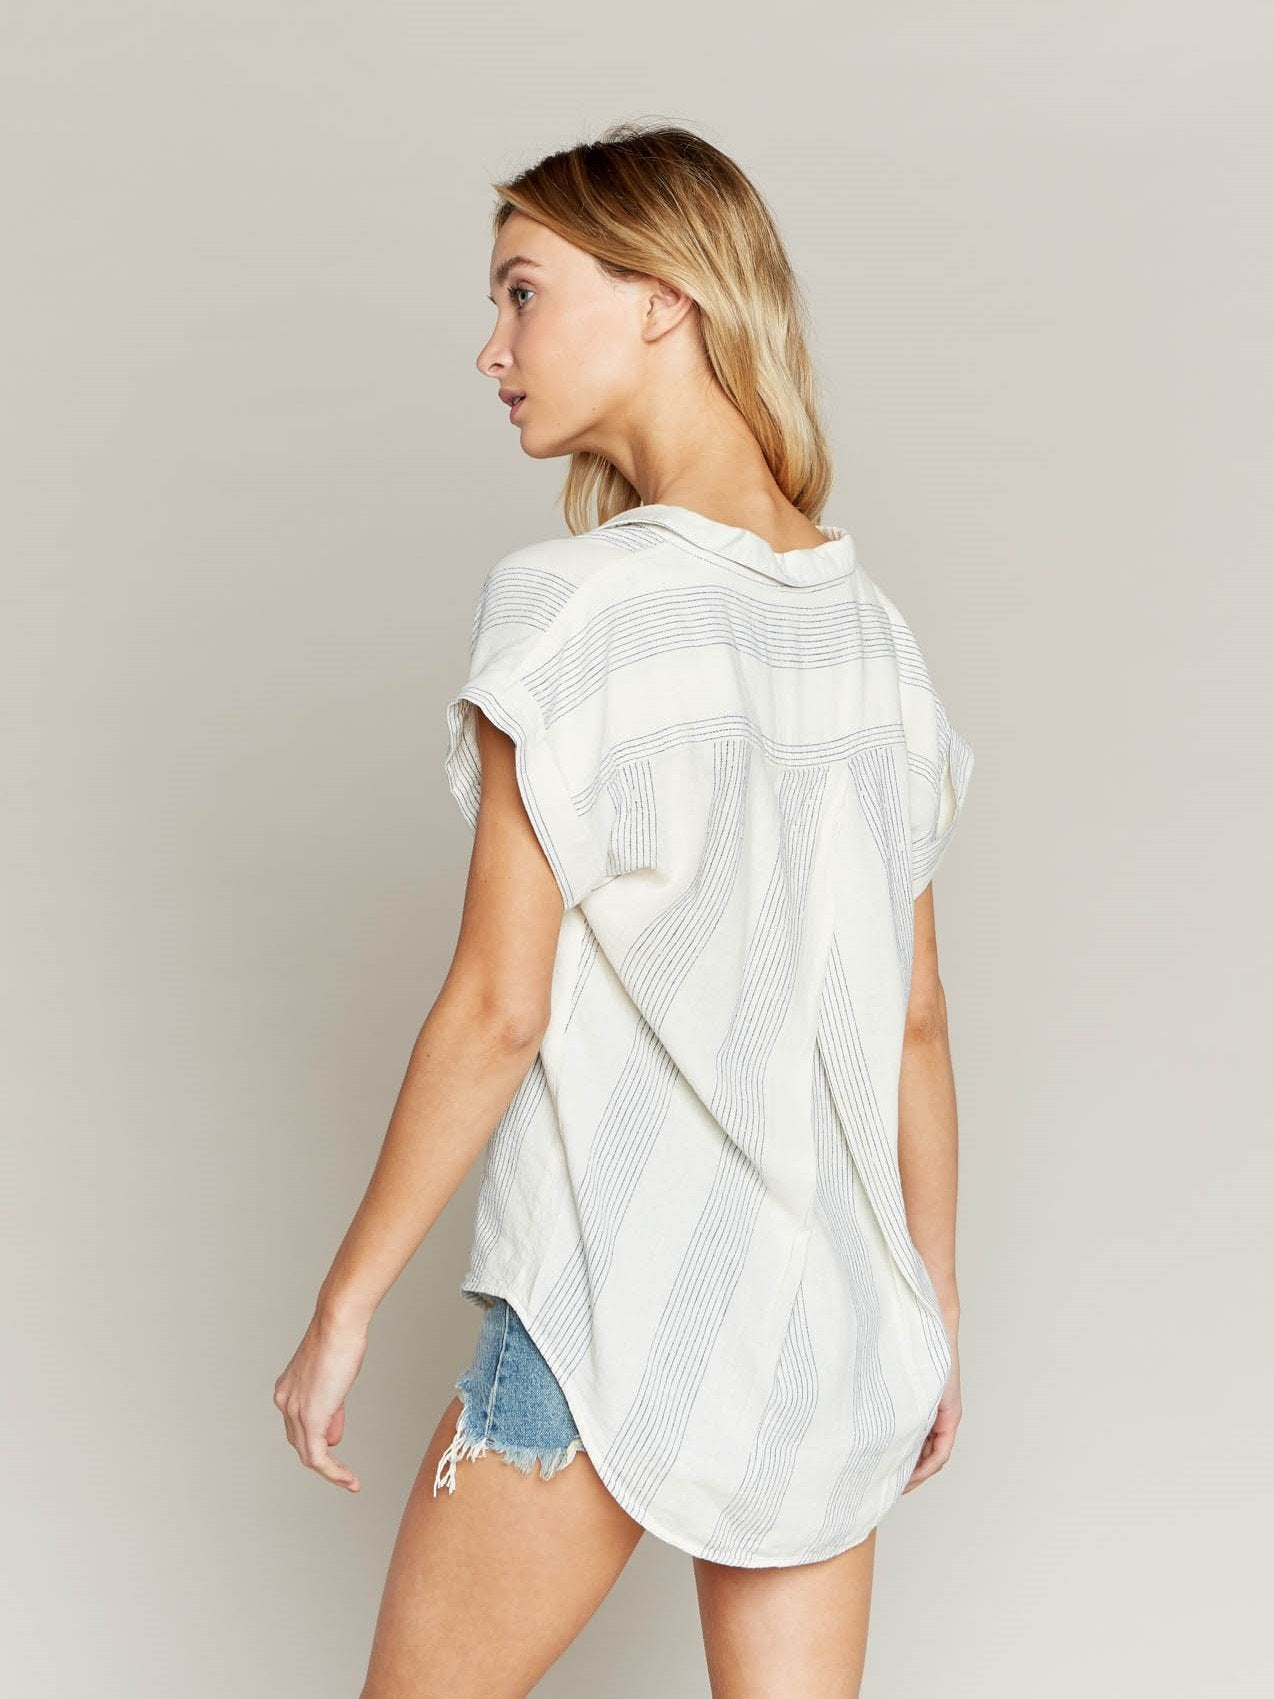 Tania Short Sleeve Camp Style Top